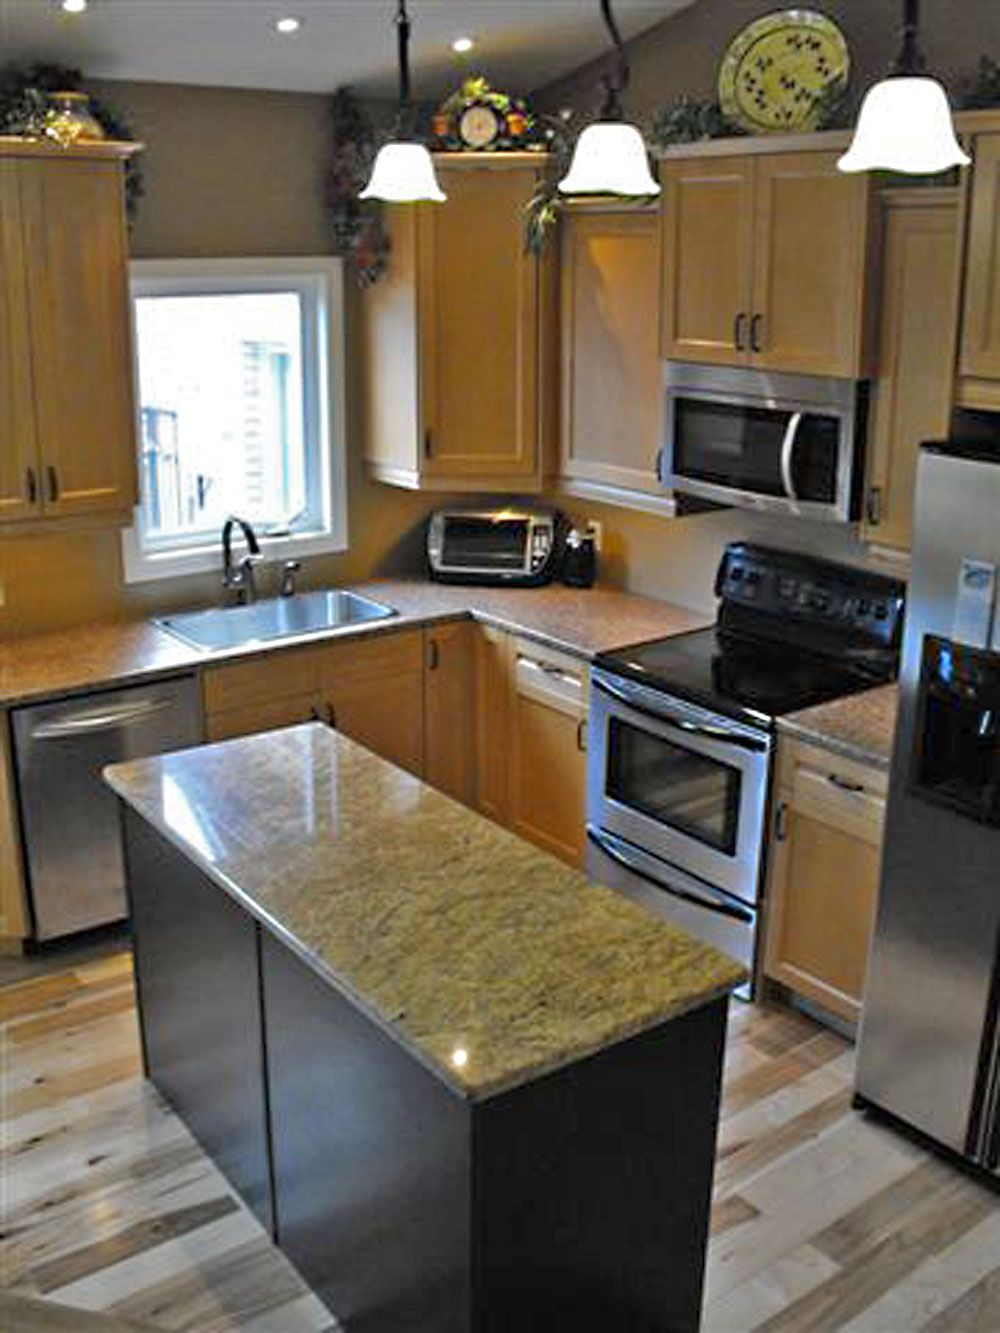 Raised ranch before and after raised ranch kitchen remodel for Kitchen ideas ranch style house